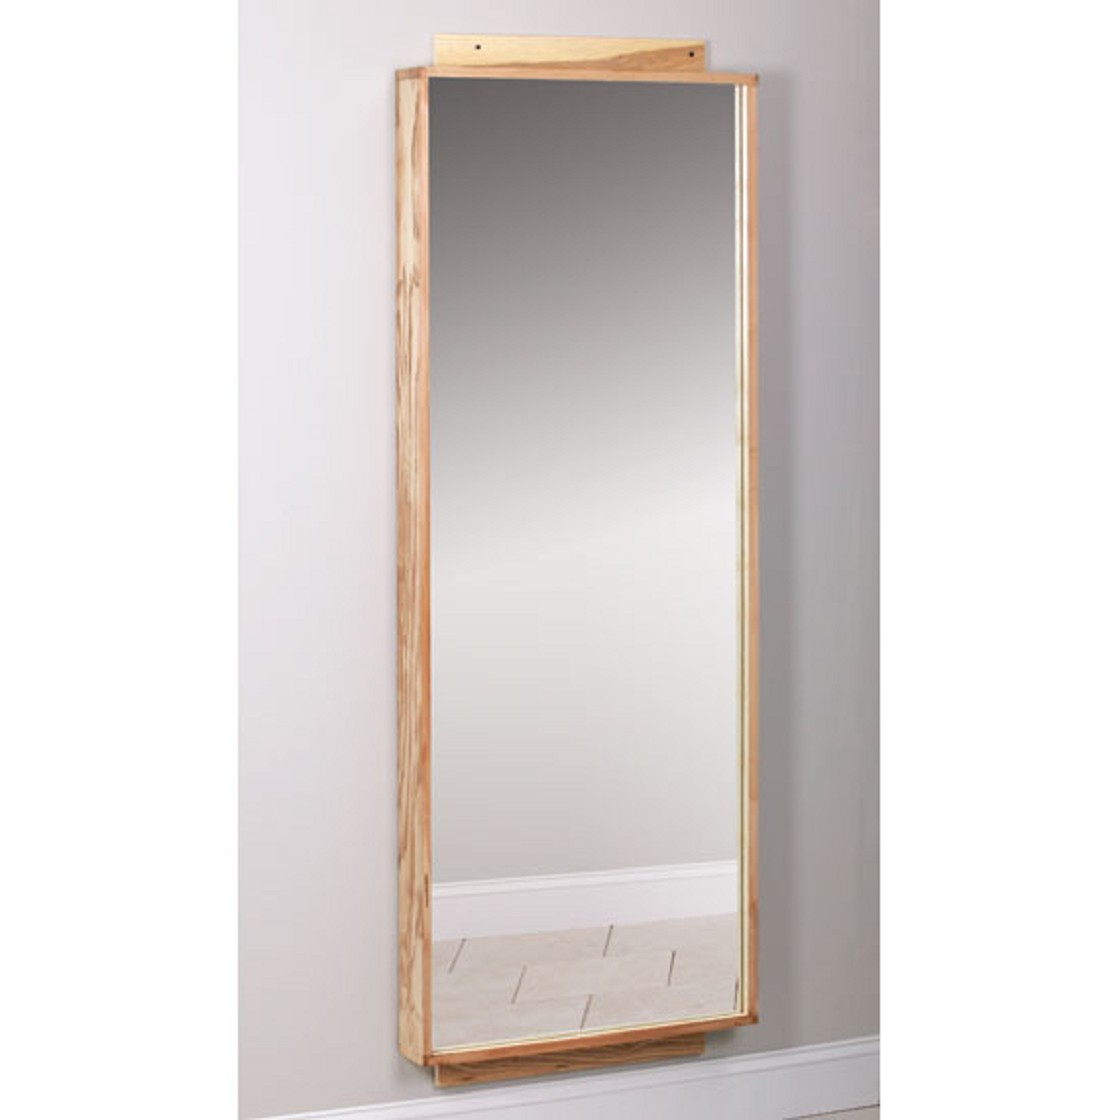 Clinton wall mounted mirror free shipping for Wall mounted mirror